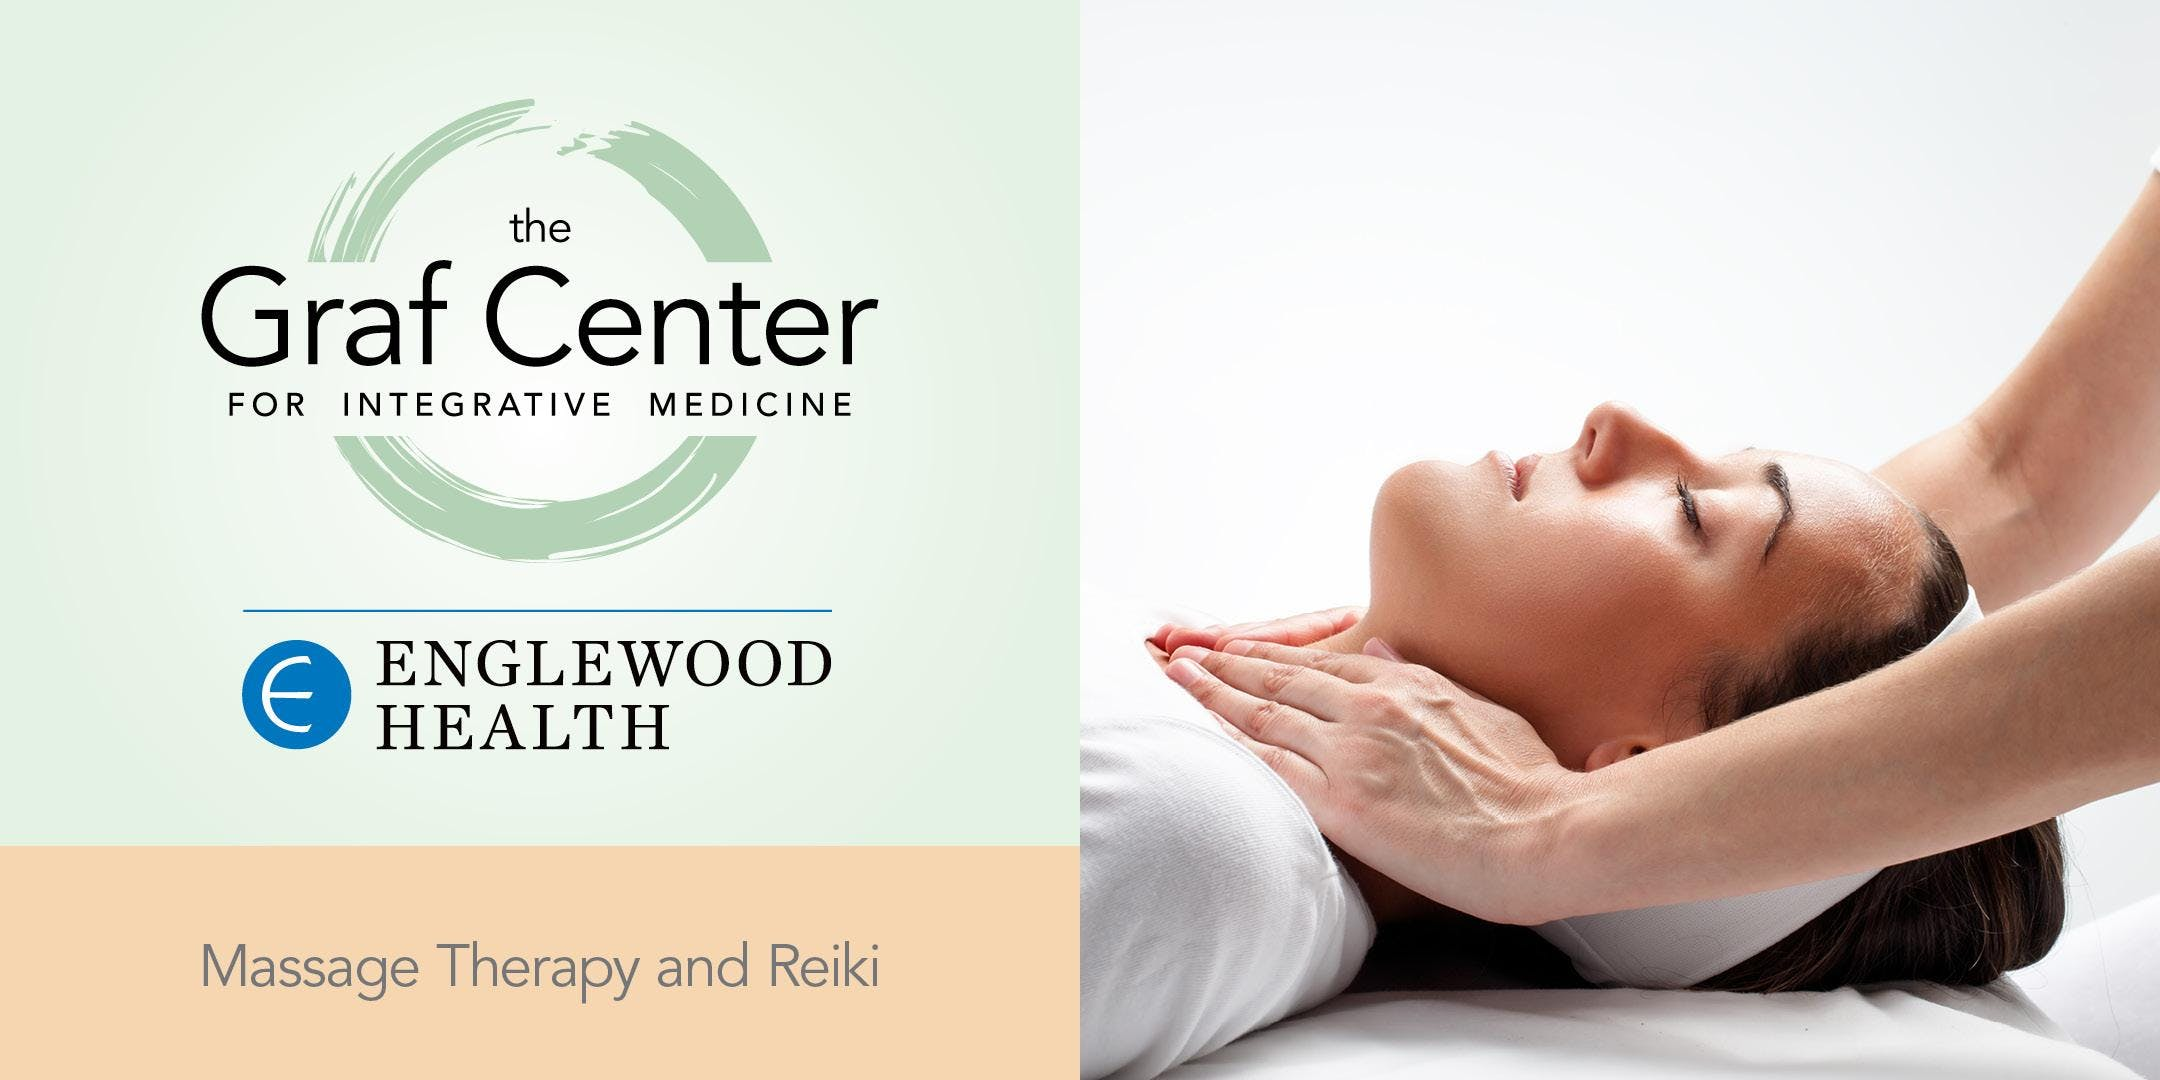 More info: Reiki Workshop for Cancer Patients